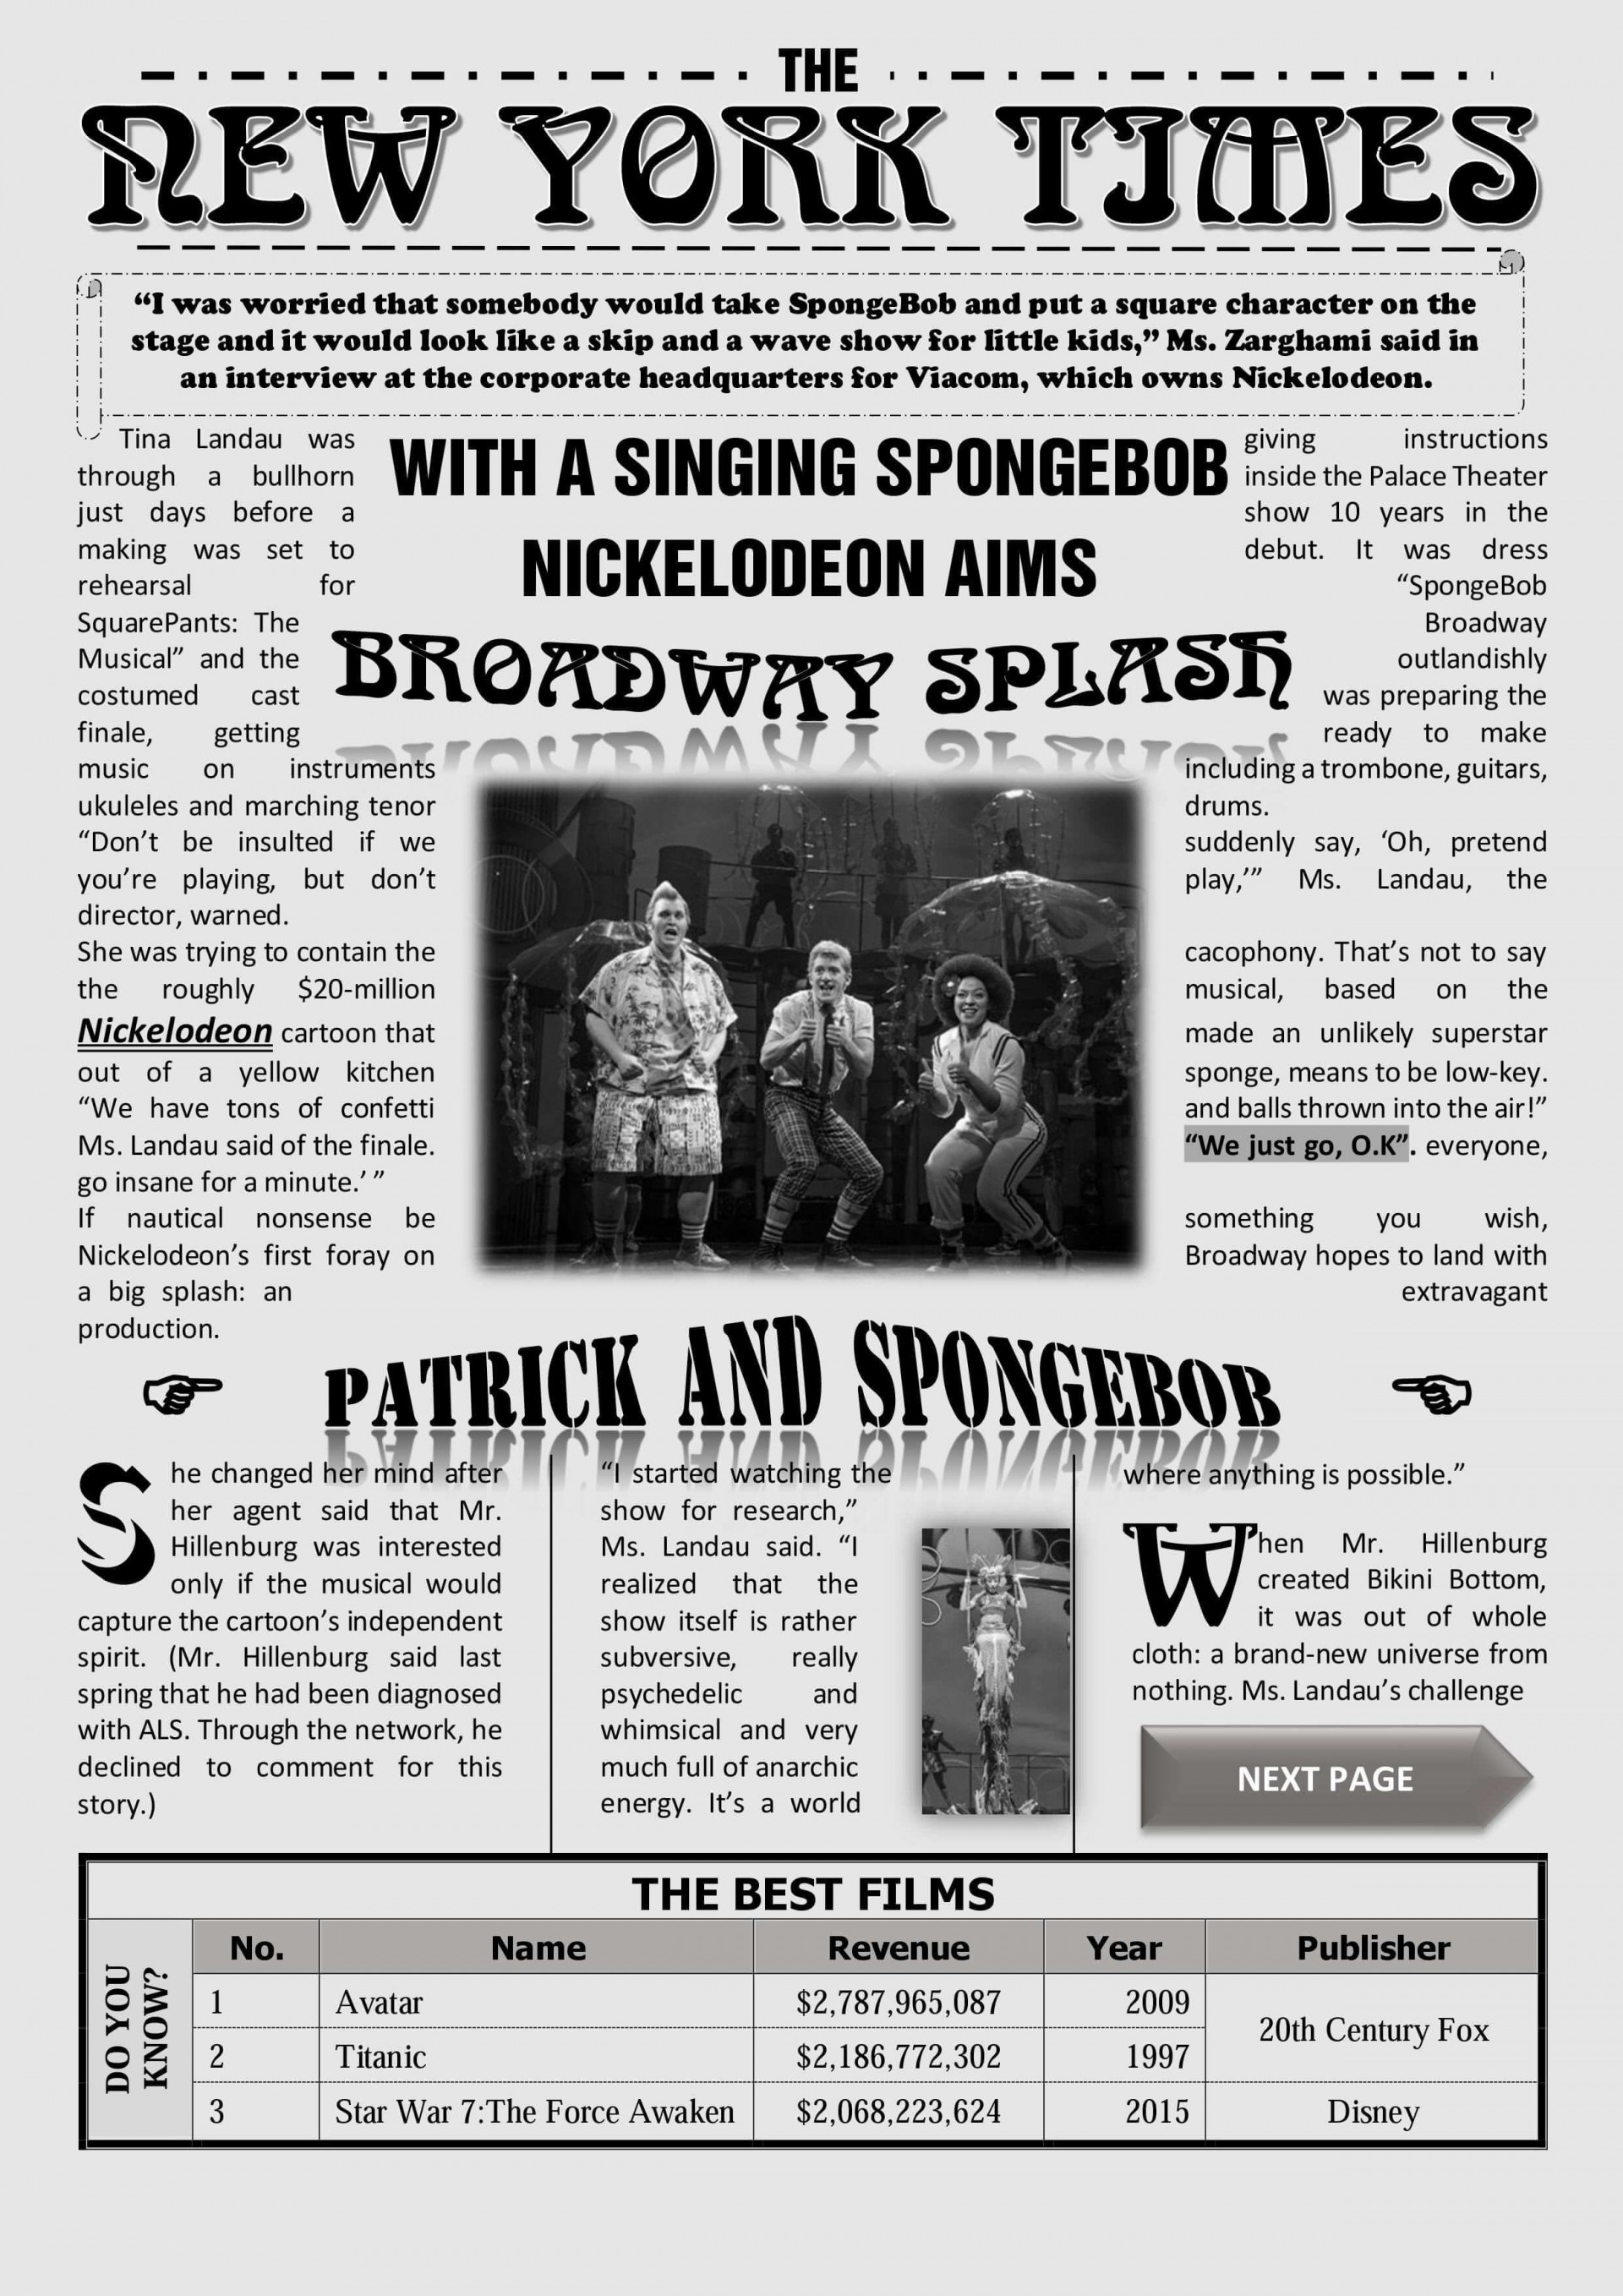 001 Dreaded Microsoft Word Newspaper Template Sample  Vintage Old Fashioned1920